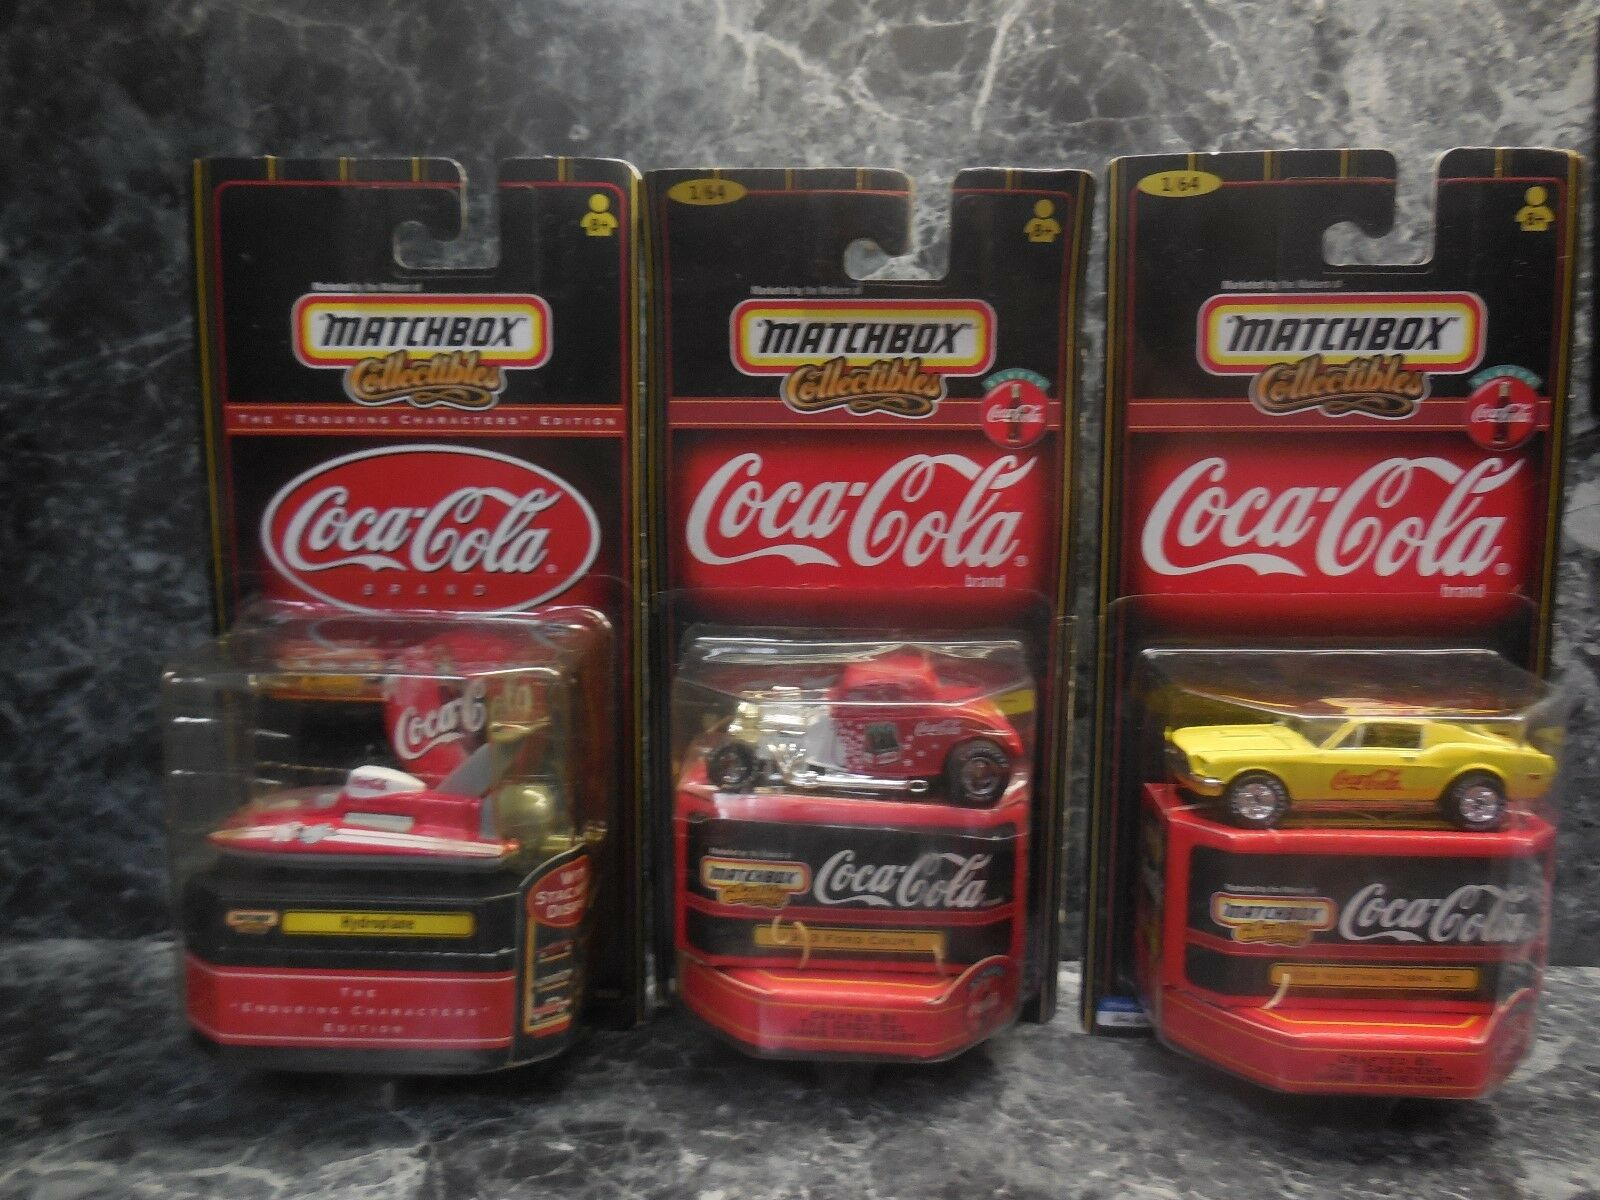 3 1999 matchbox coca-cola cars  1 hydroplane 1933 ford coupe 68 mustang cobra je